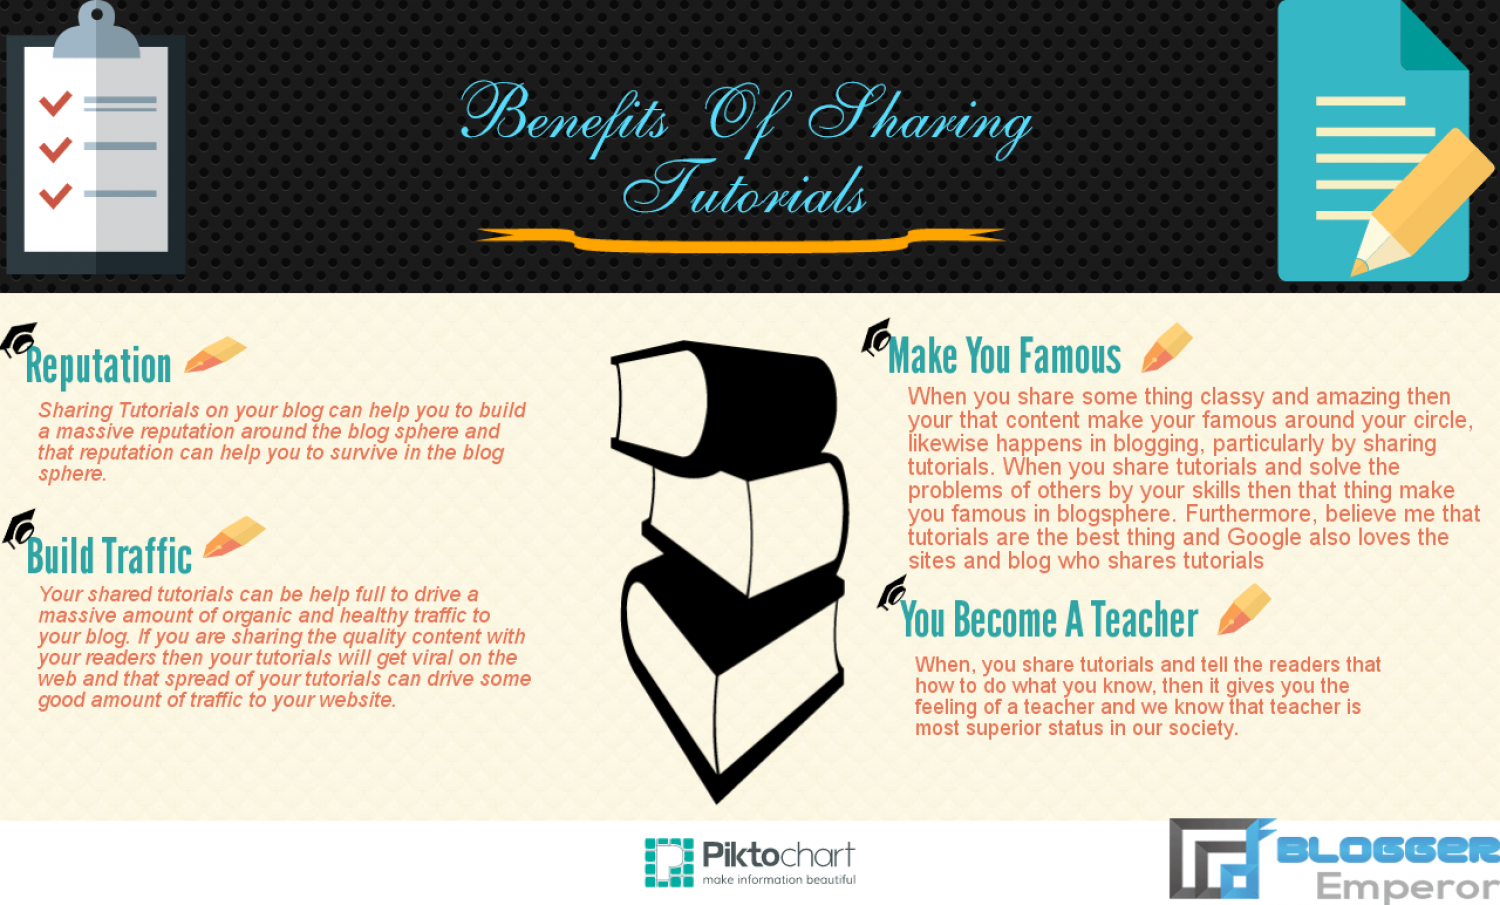 Benefits Of Sharing Tutorials Infographic